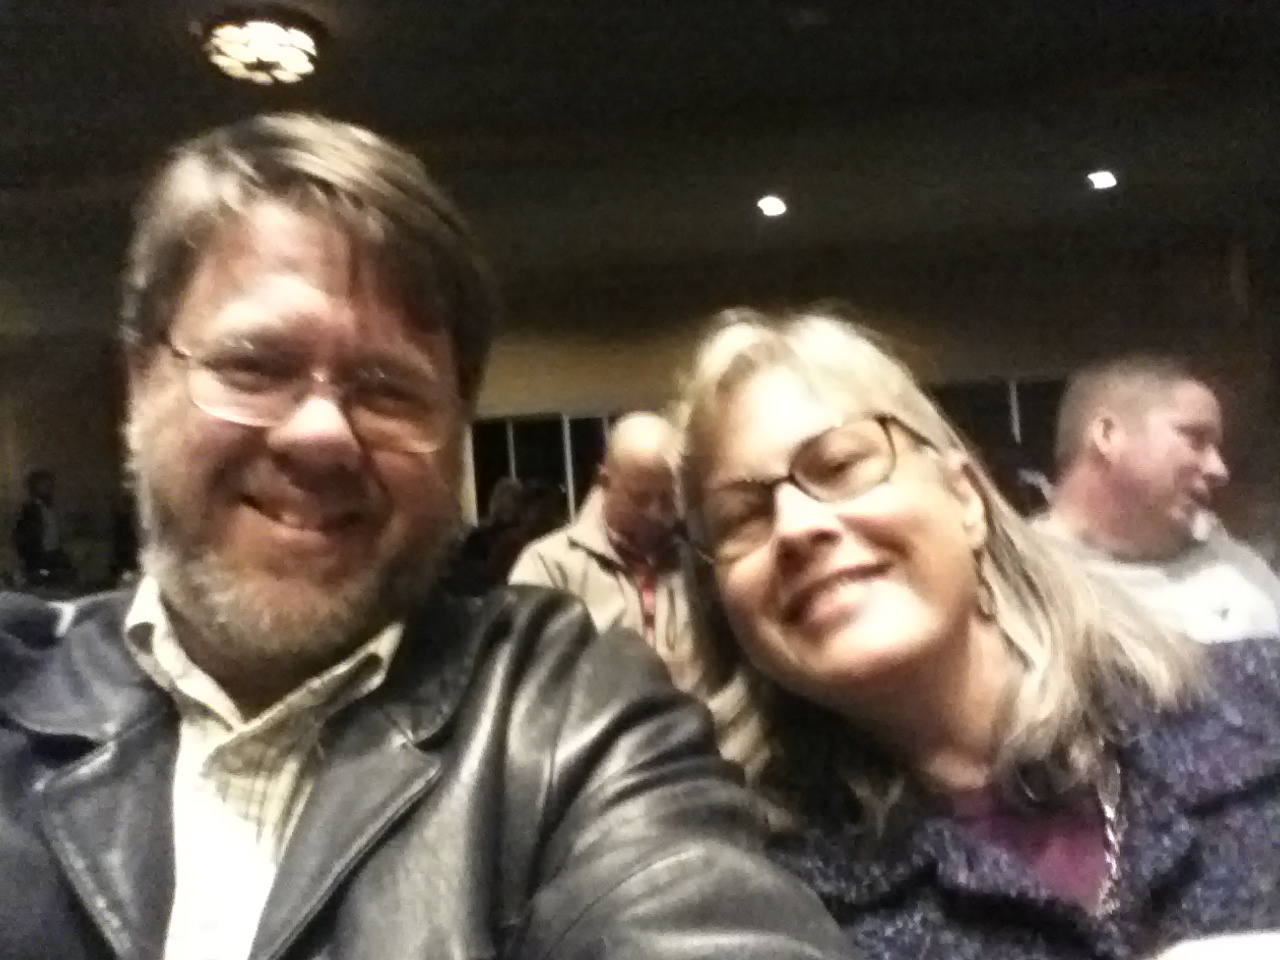 At the Kathleen Madigan Show